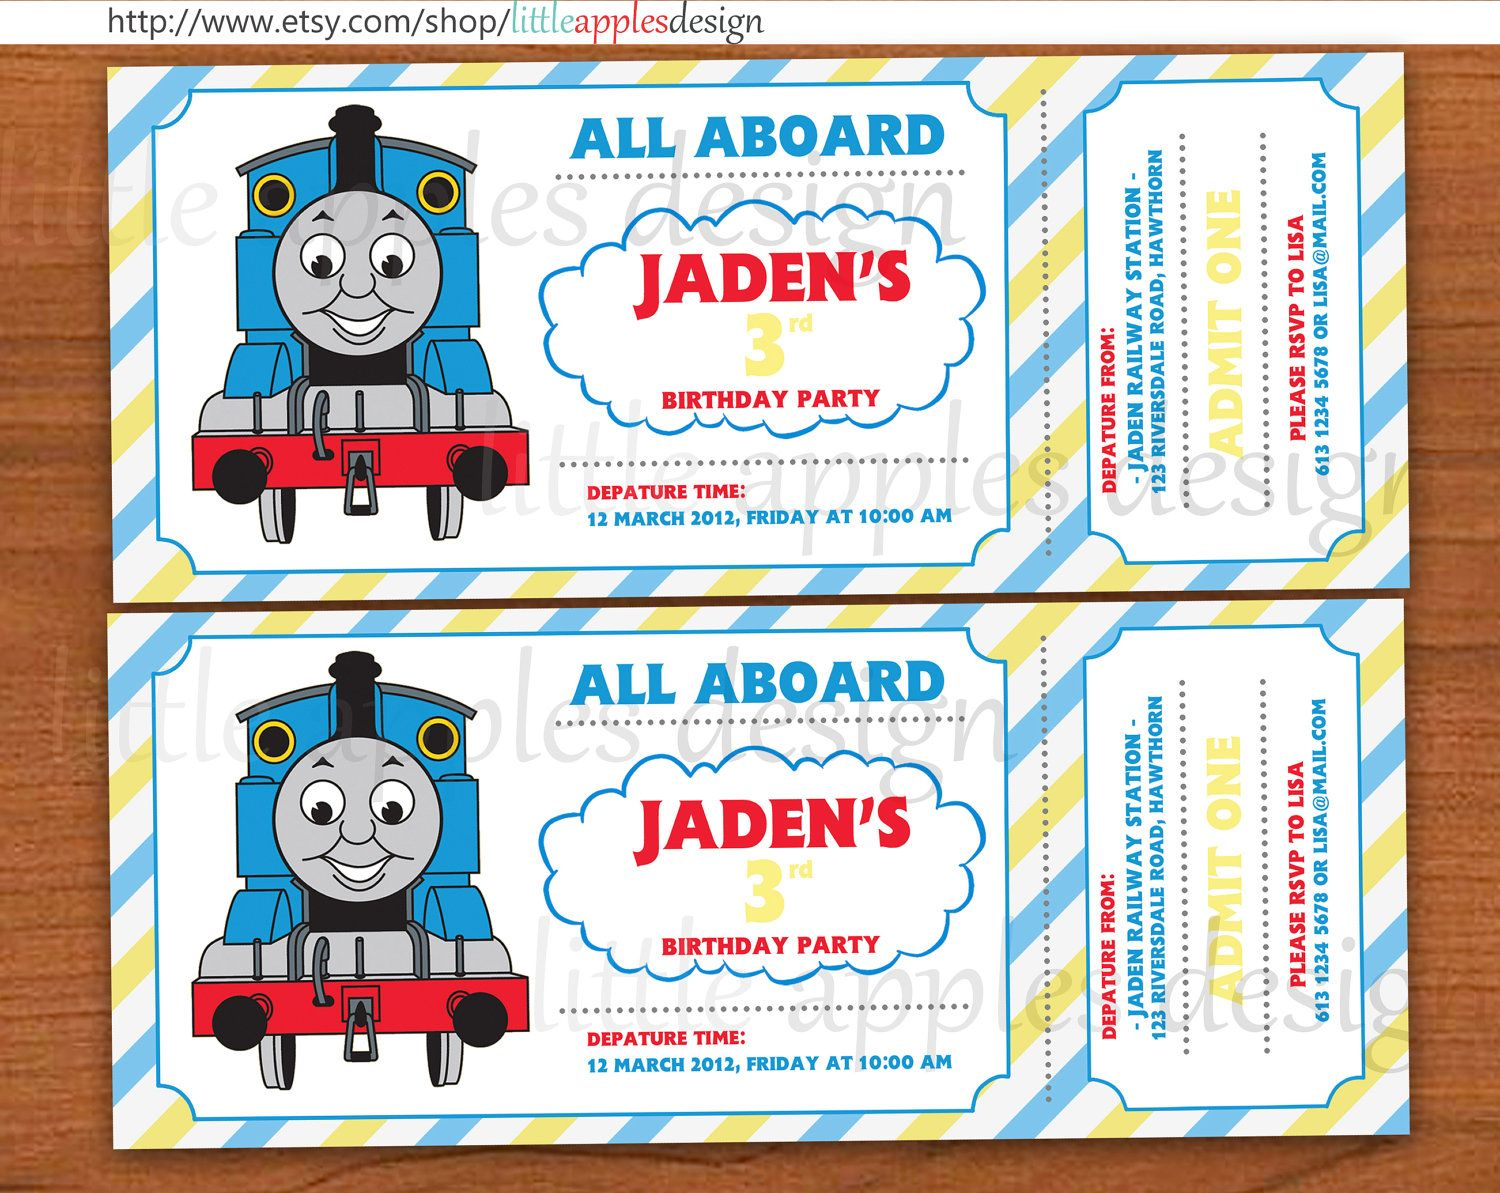 cool thomas and friends invitations | ... Apples Design: {Now in ...